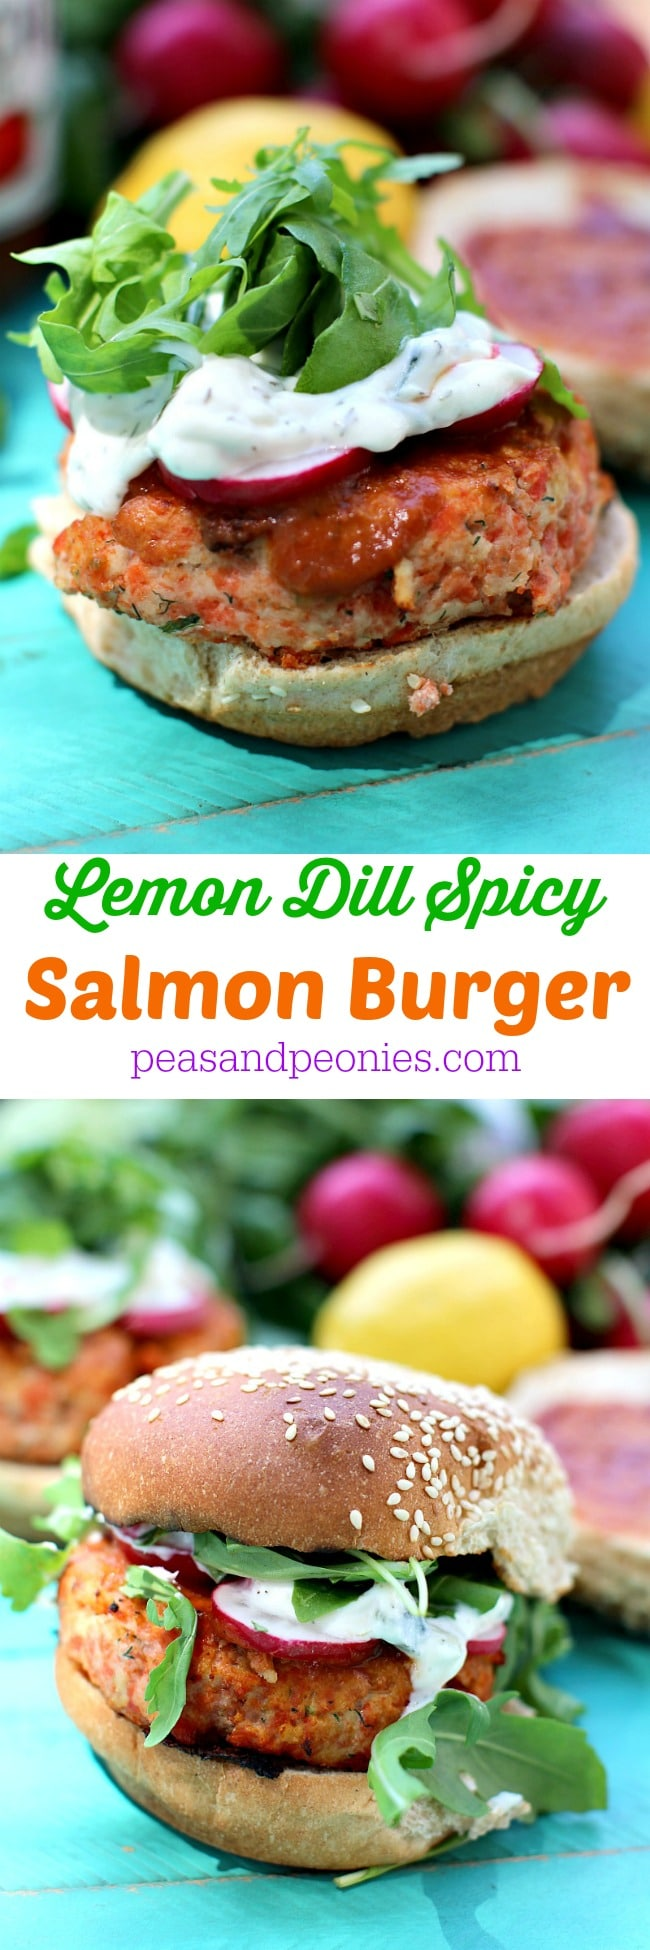 Delicious and irresistible Spicy Salmon Burger made with fresh lemon zest and dill, also Antipasto Bar Hot Dogs for the perfect summer BBQ get together.